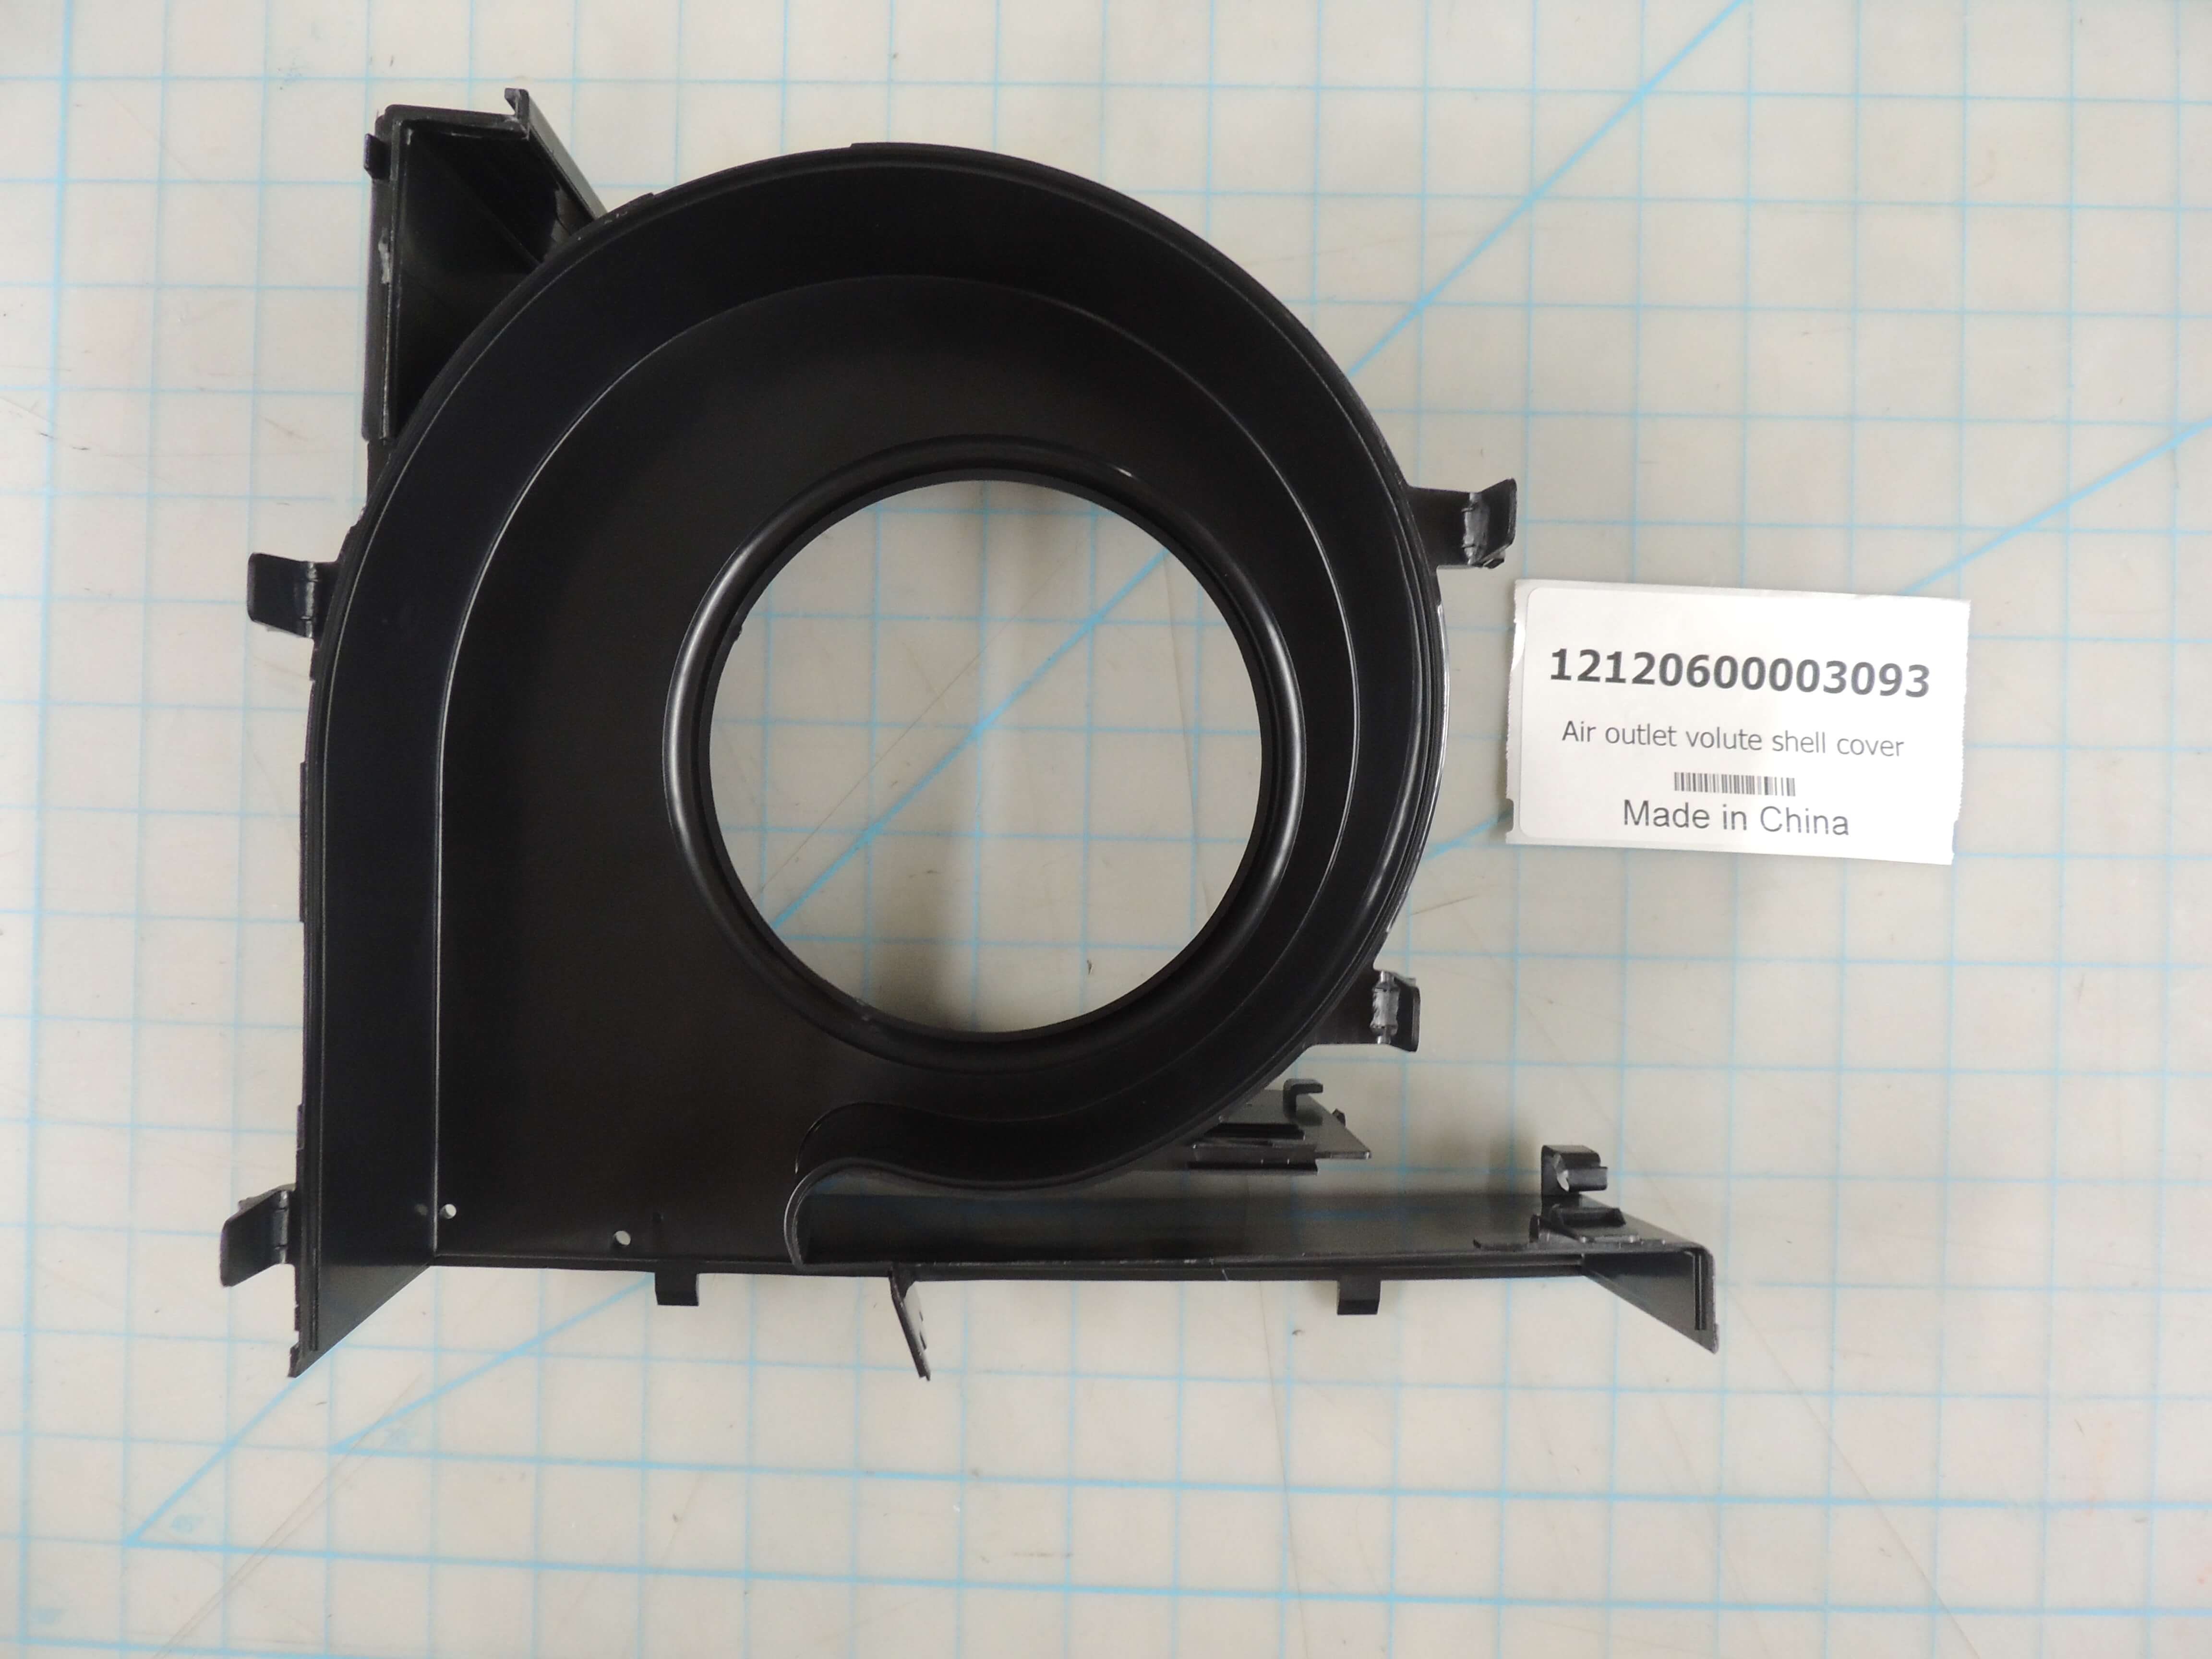 Air outlet volute shell cover